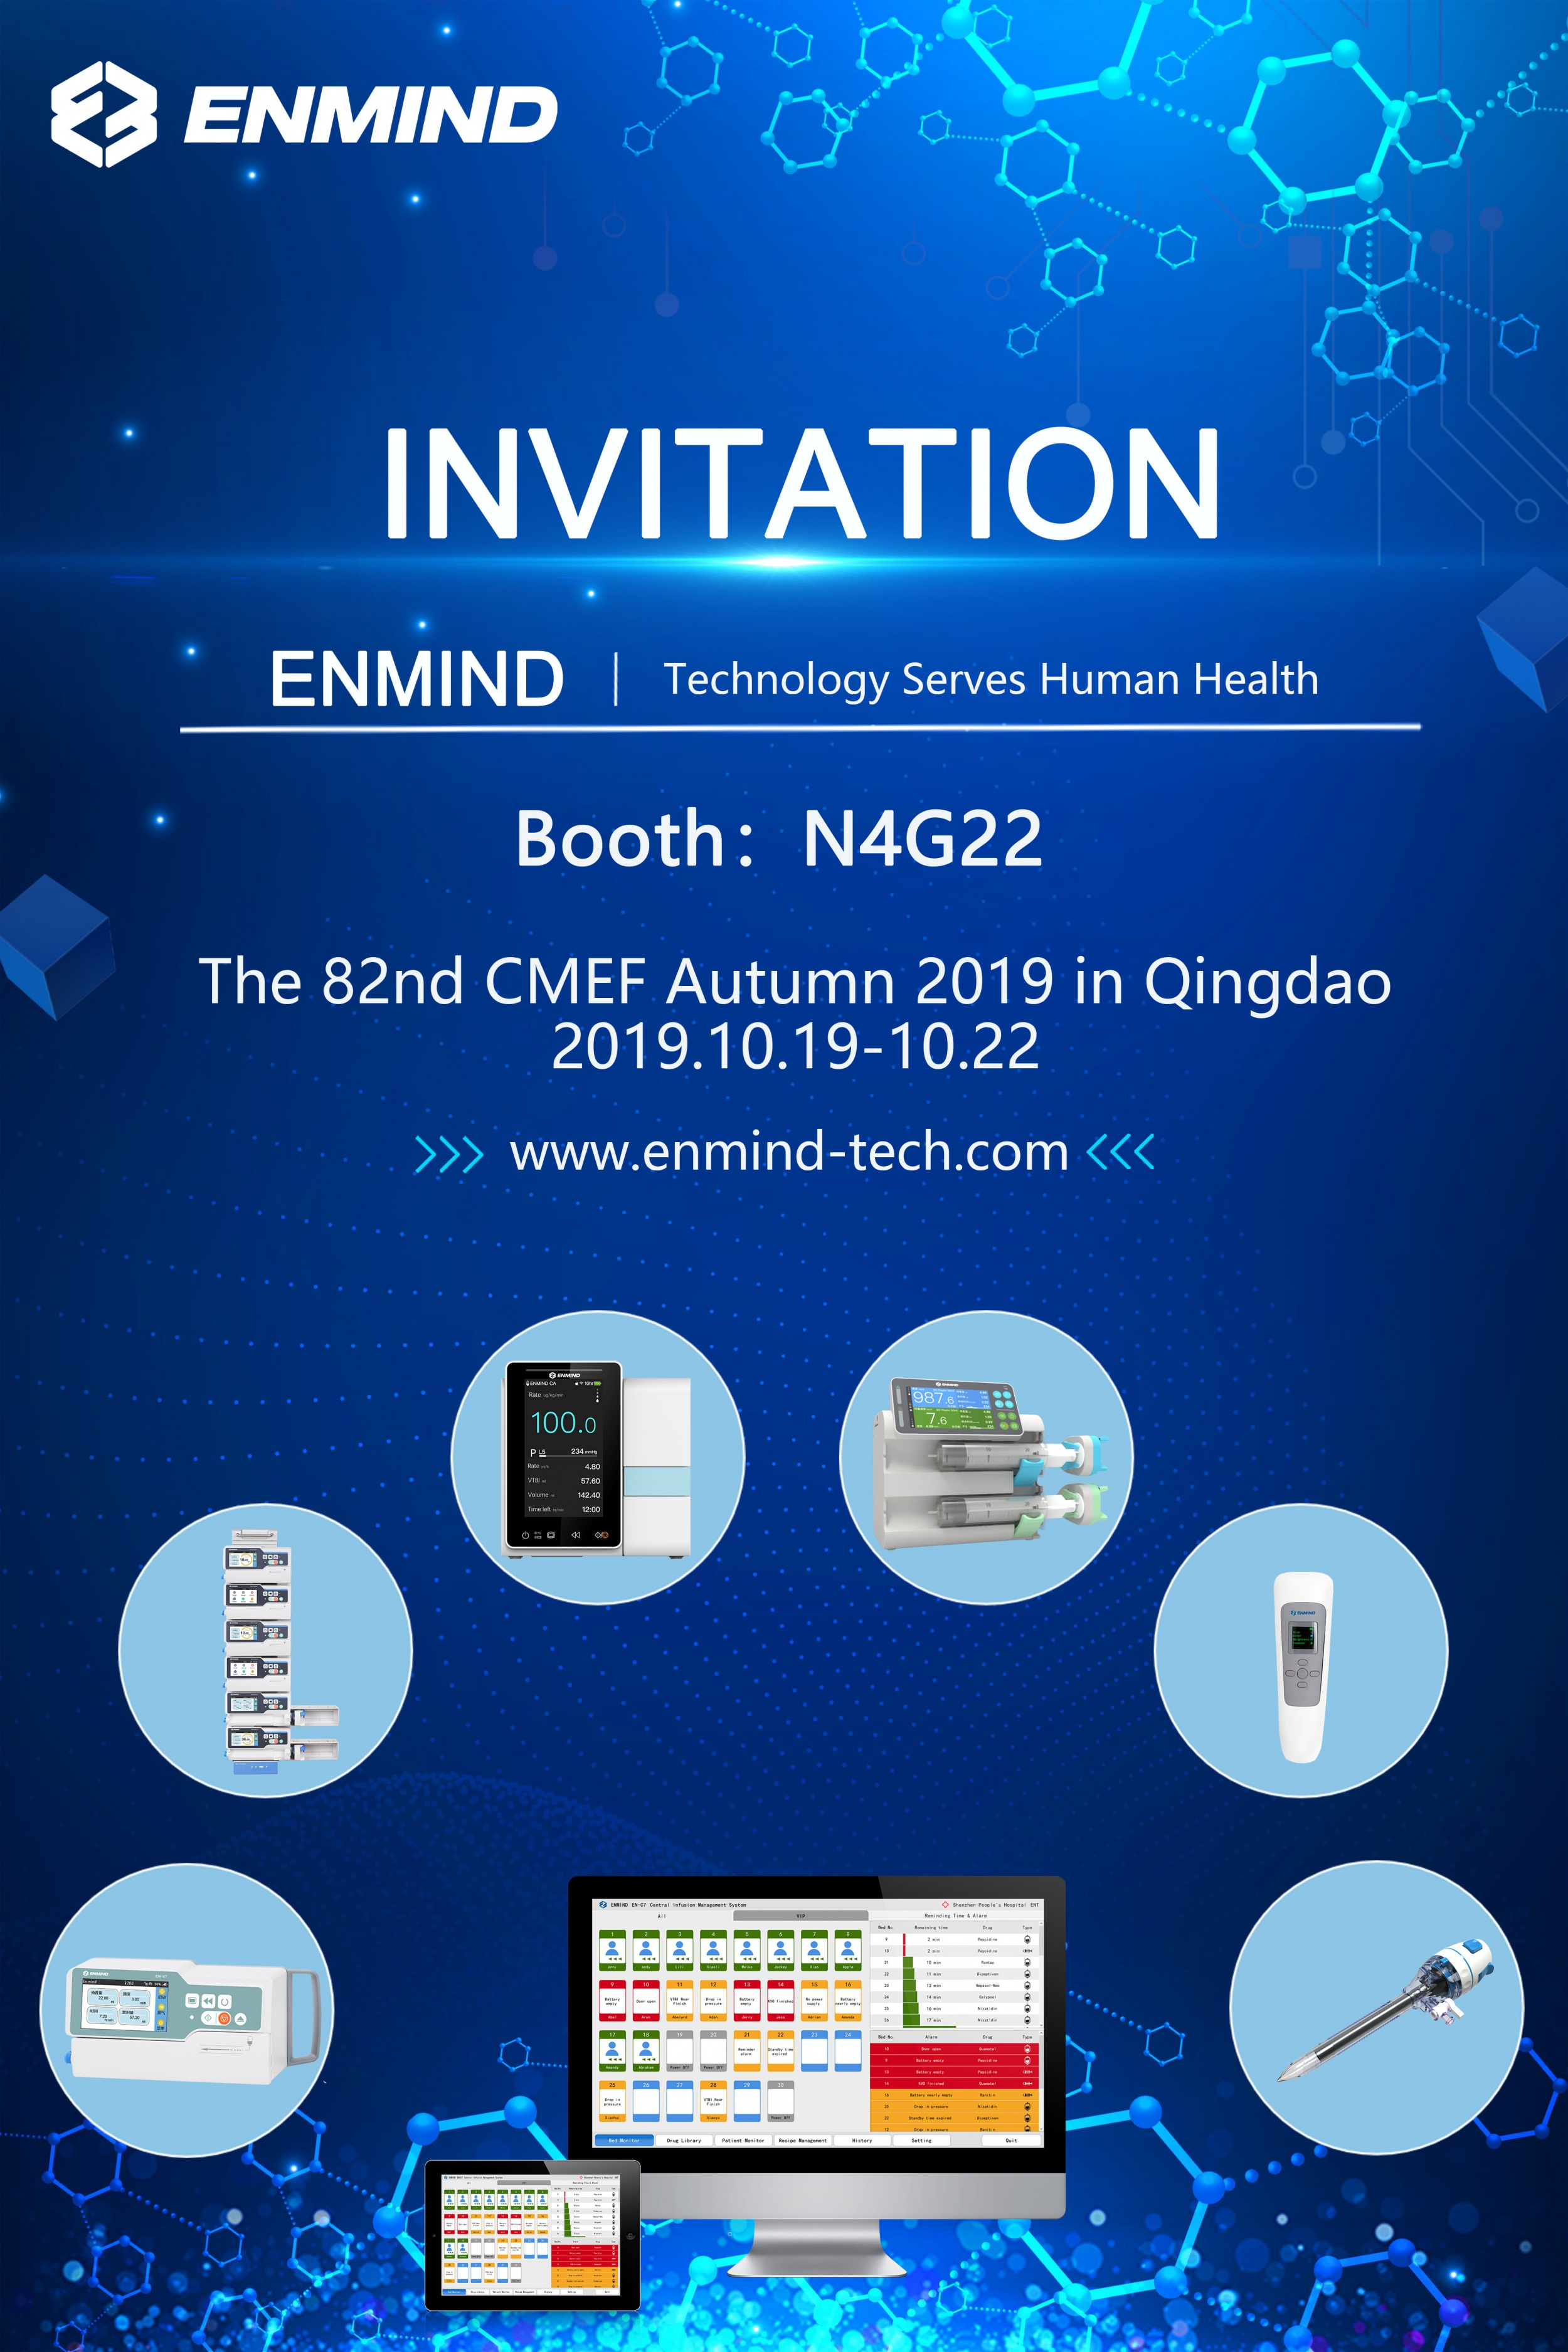 The CMEF Autumn 2019